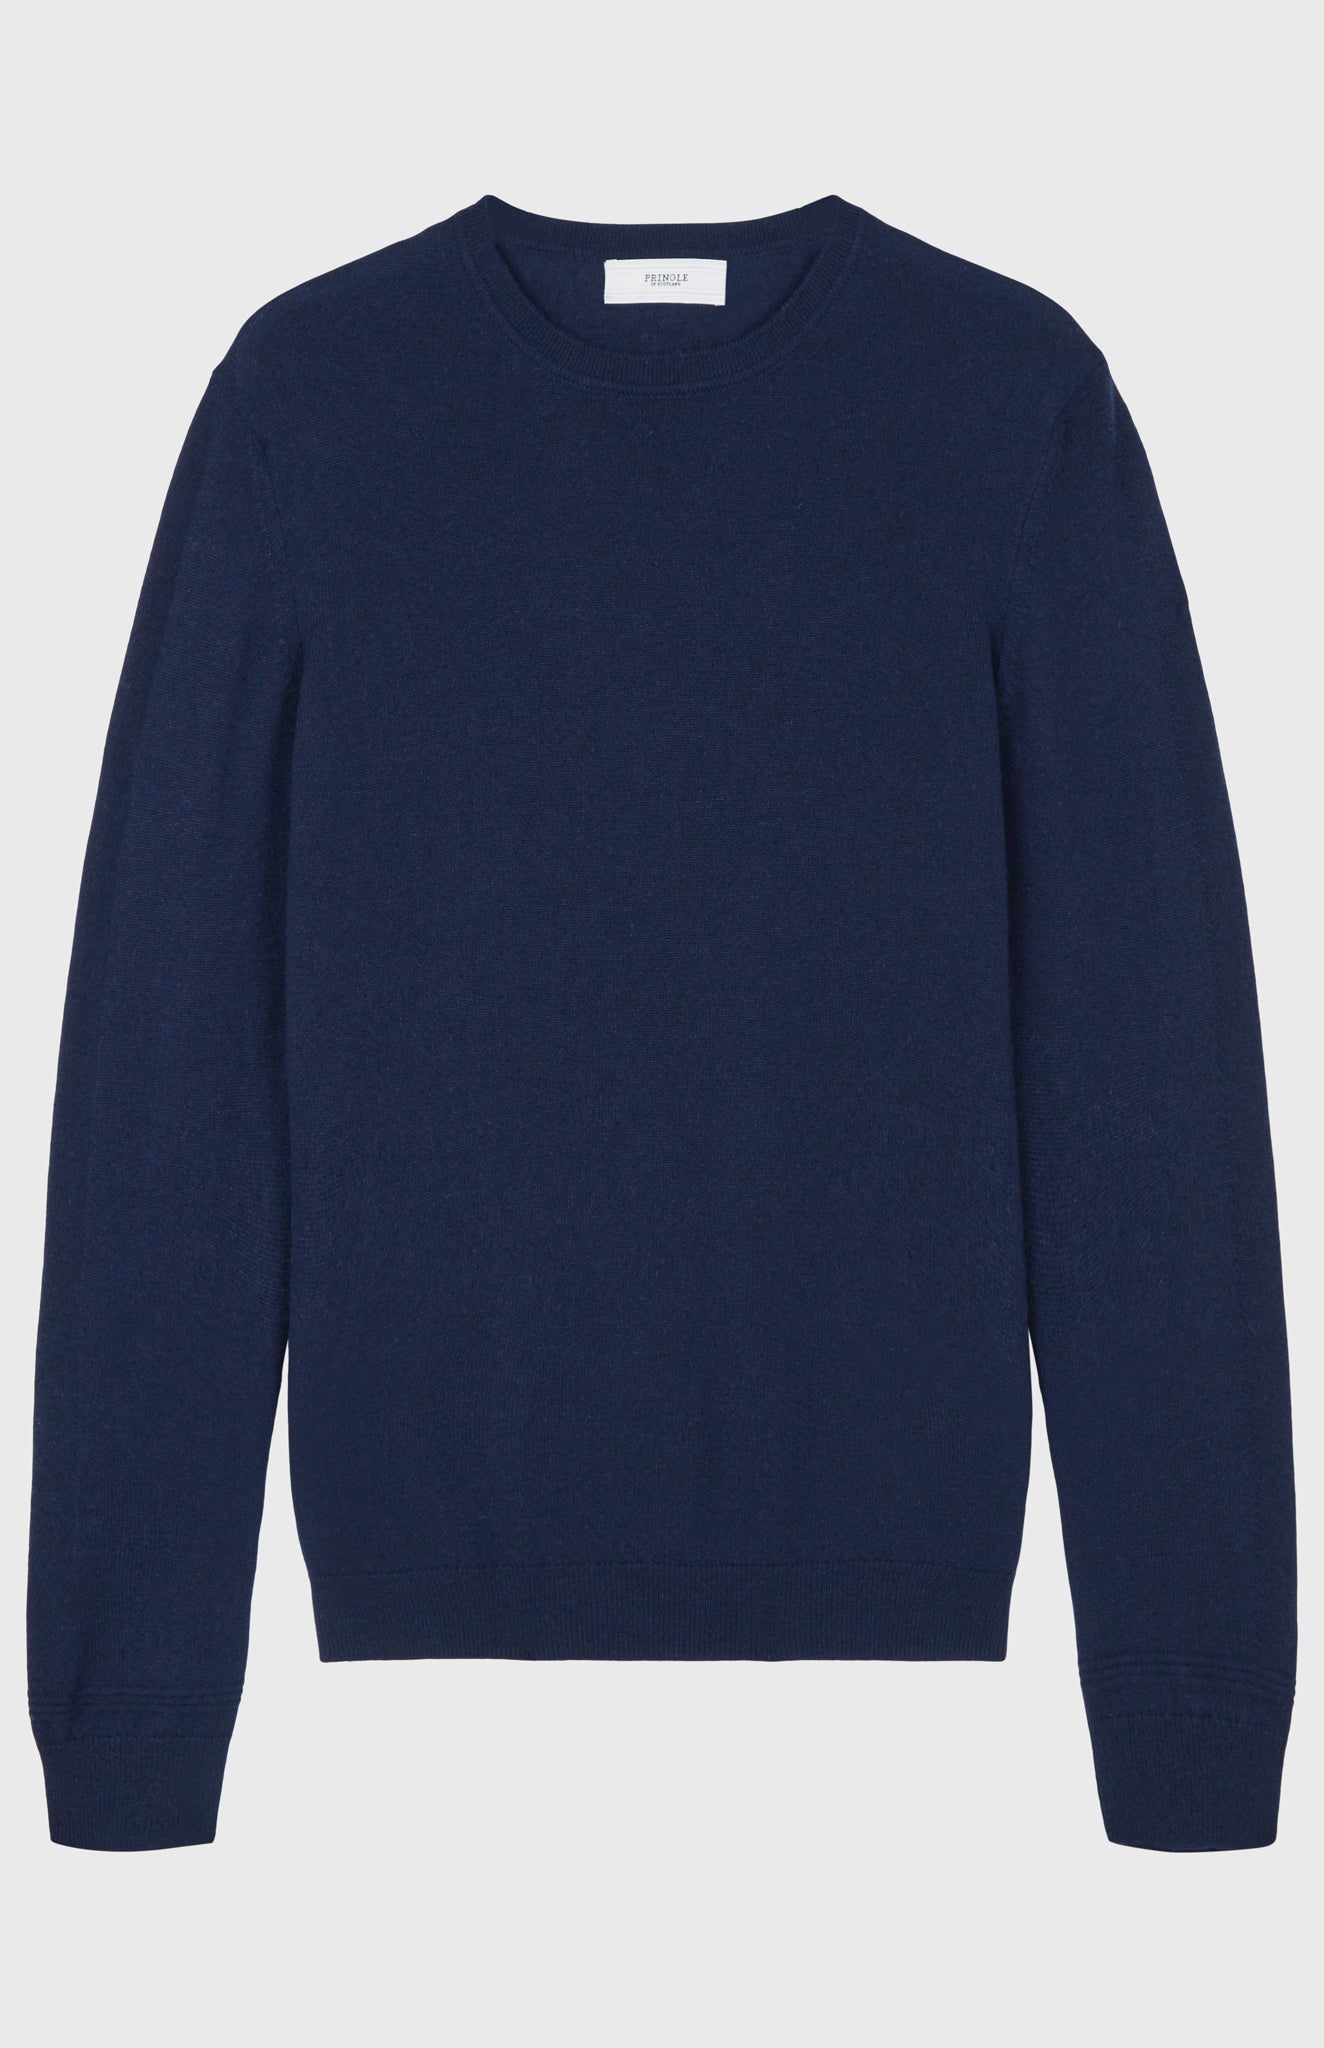 Men's Scottish Cashmere Round Neck Jumper In Ink